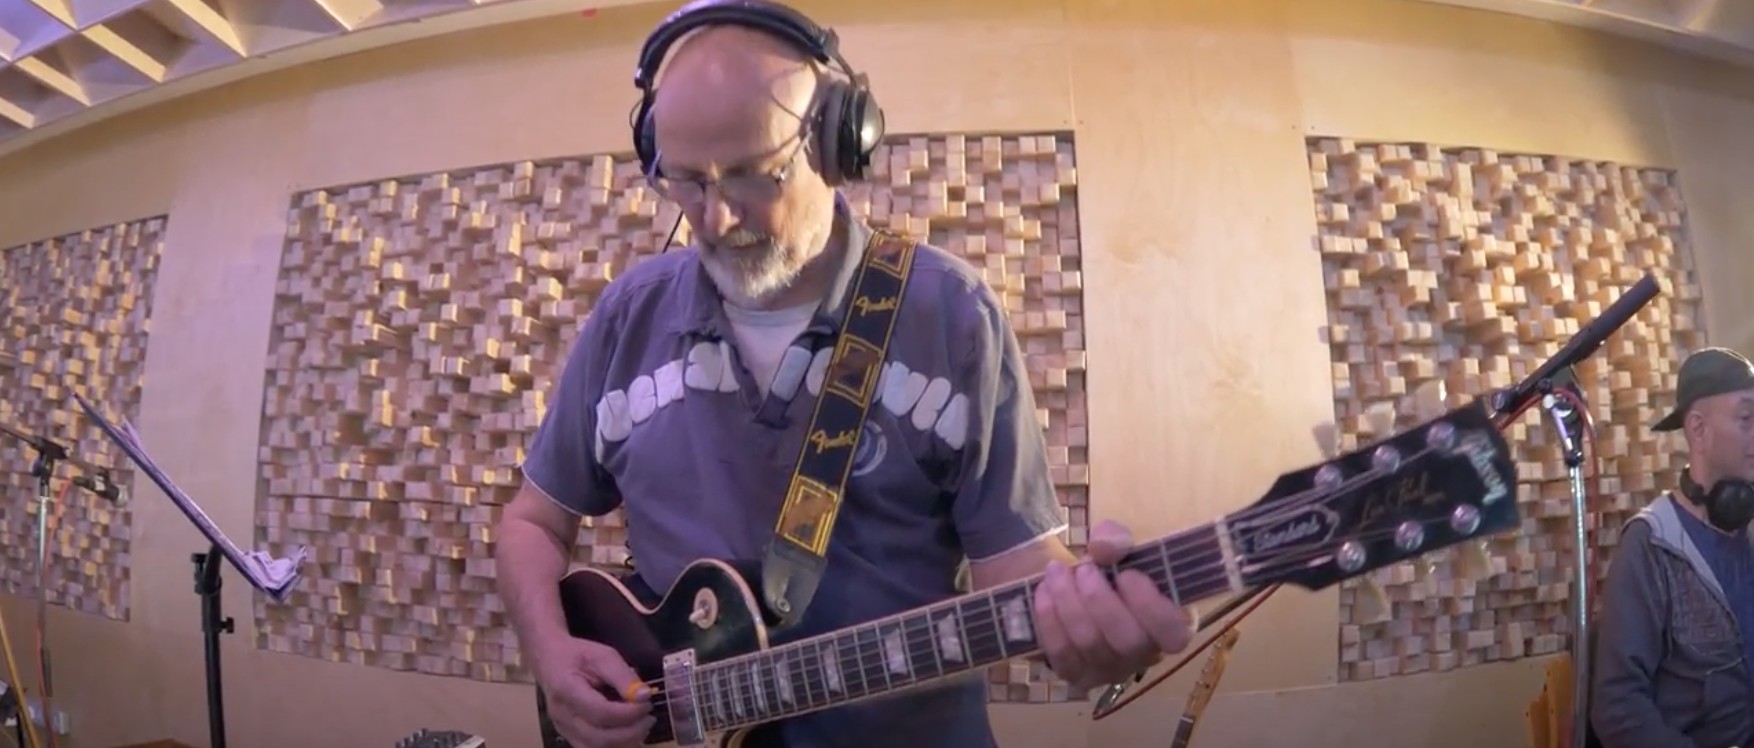 martin smith working on Jammin Player music library